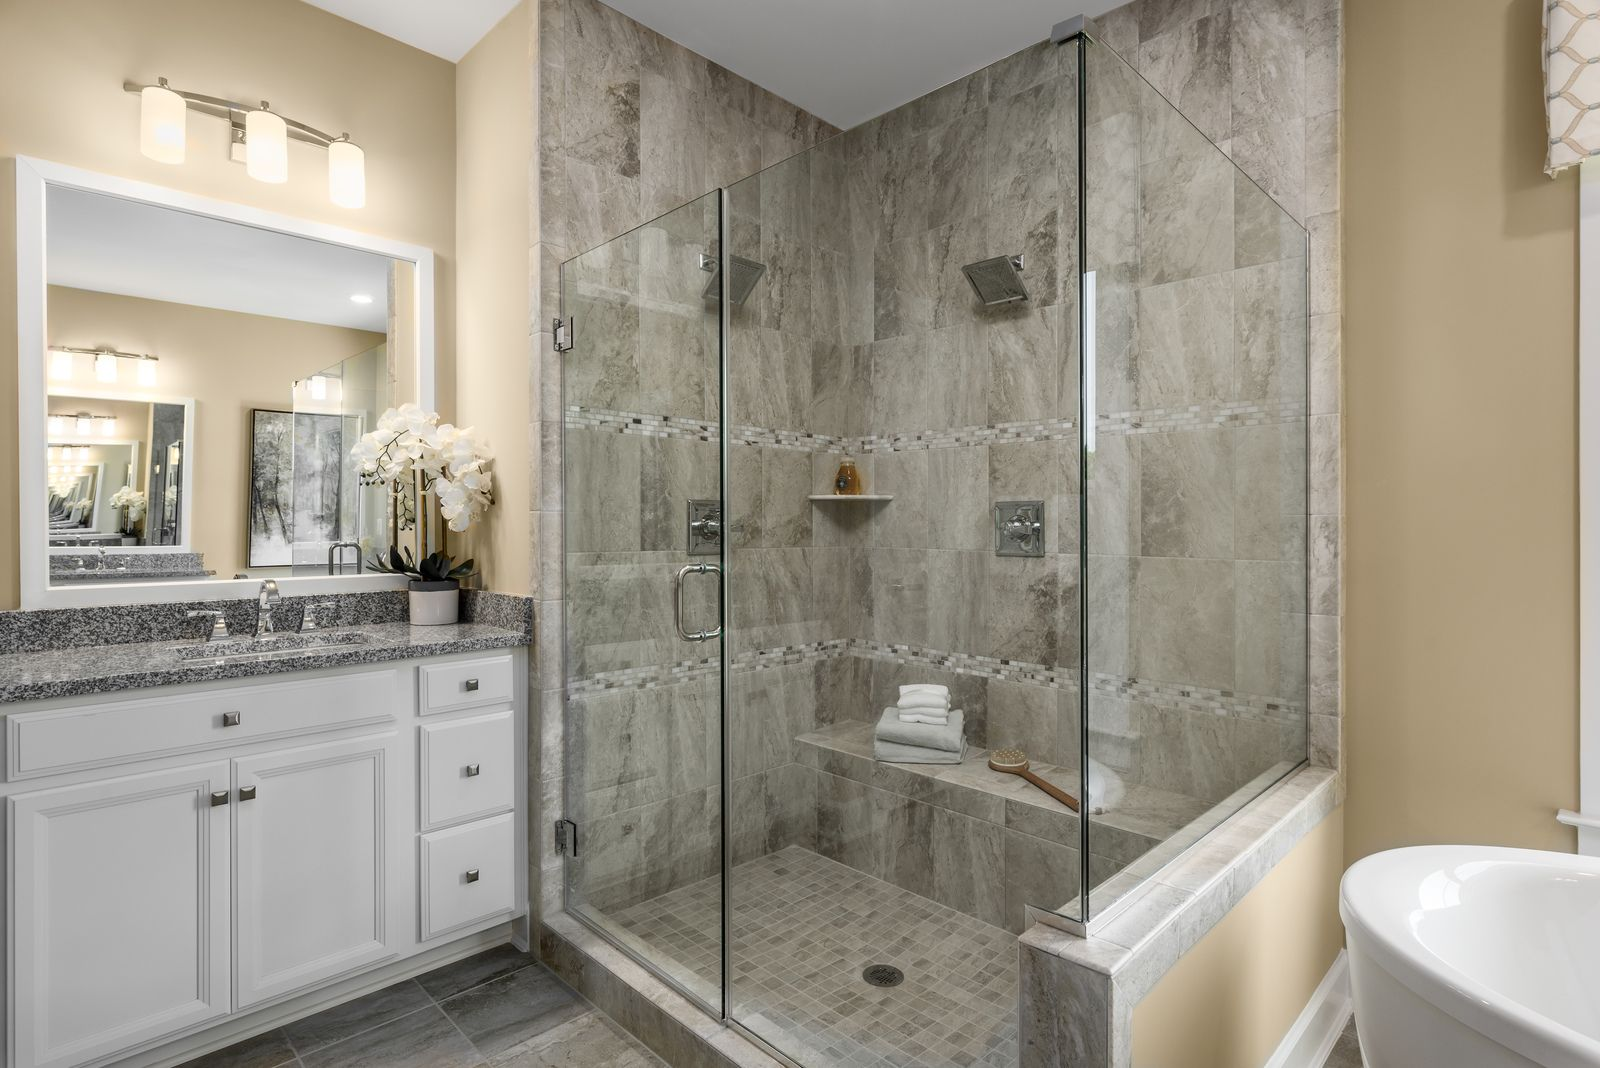 Bathroom featured in the Liberty By NVHomes in Philadelphia, PA